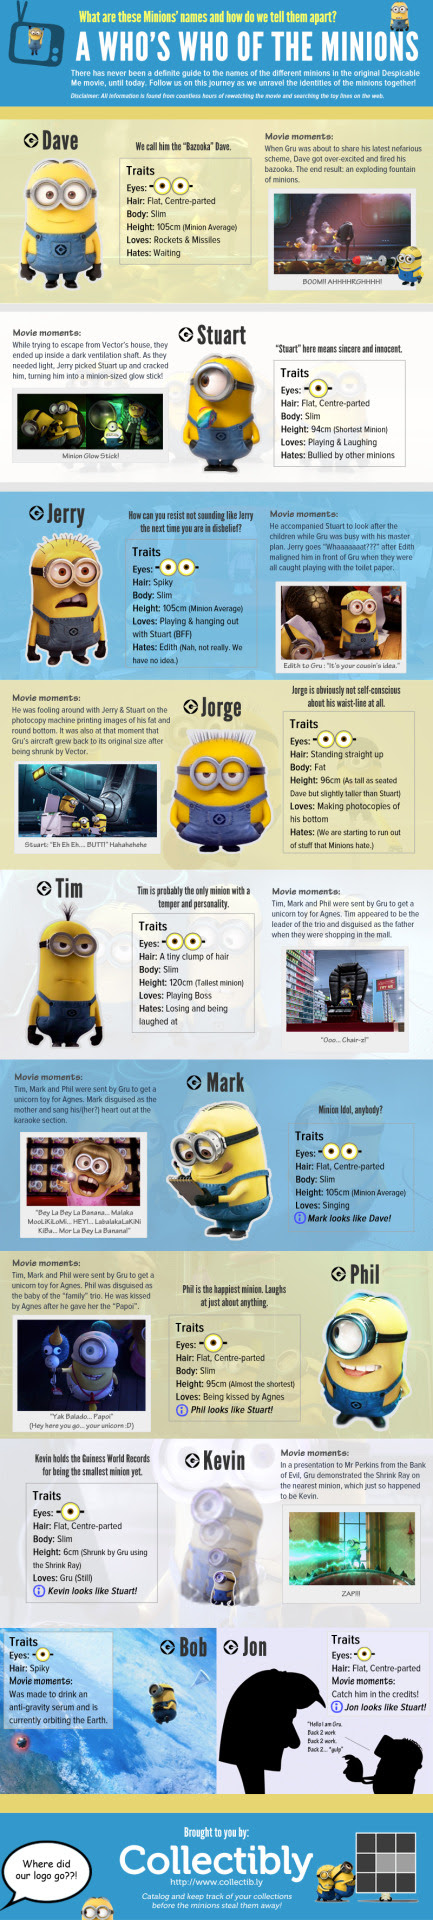 A Whos Who of the MinionsGuide to Despicable Me MinionsNote: Click on the image to view a higher resolution version of the infographic! Enjoy :)Are you a collector looking for a place to catalog your own collections and connect with other collectors who share the same interests? Then you might want to check out collectibly at http://www.collectib.ly or follow us for the latest developments on Collectibly.